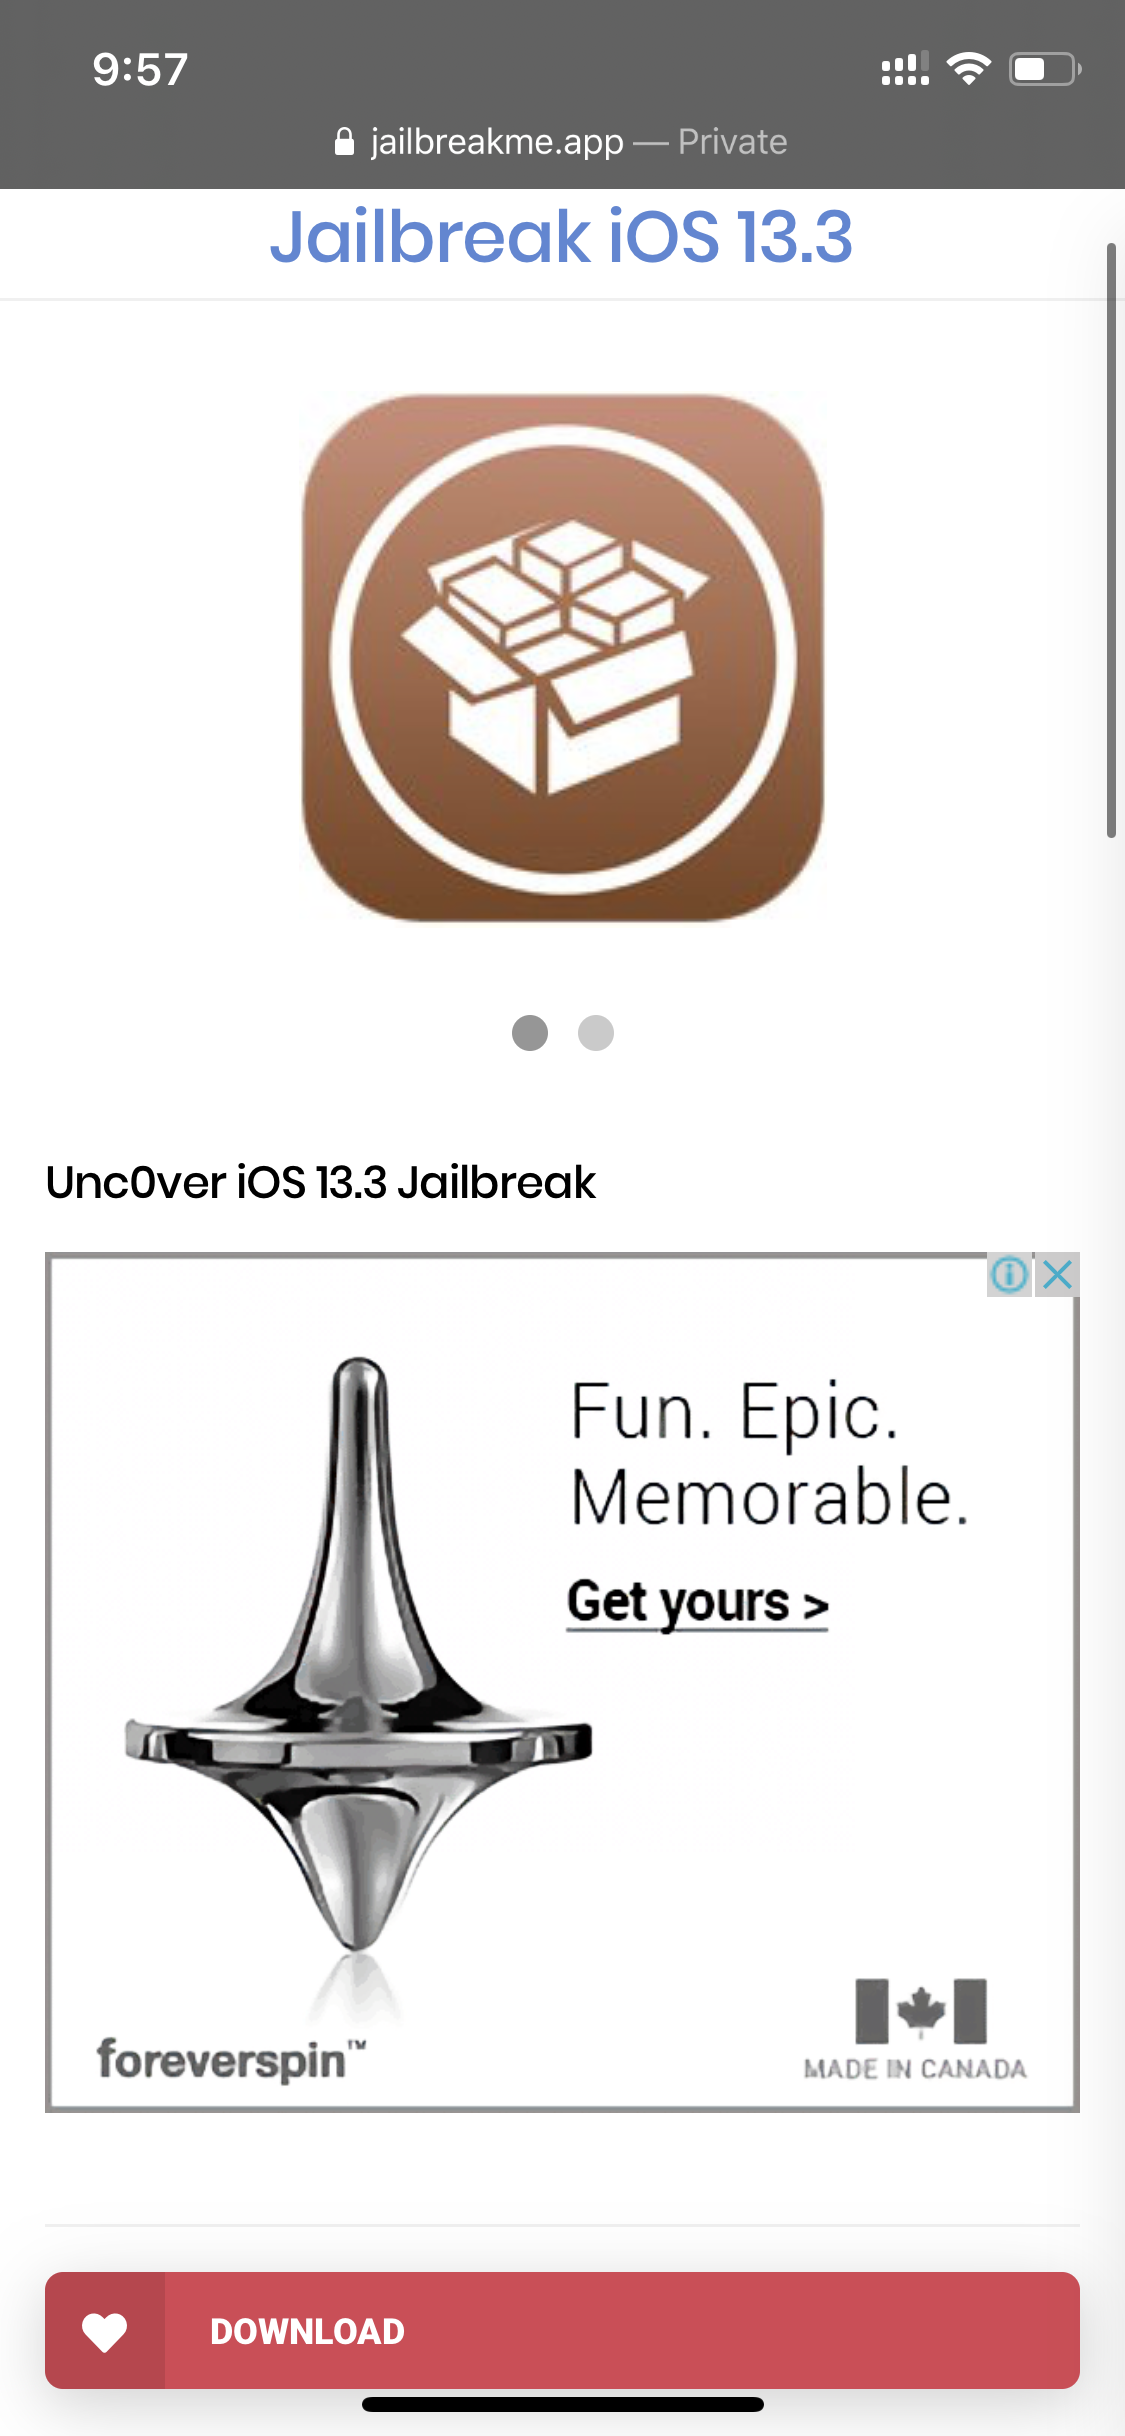 SO after doing all of this, Go to Safari and search URL: https://jailbreakme.app/